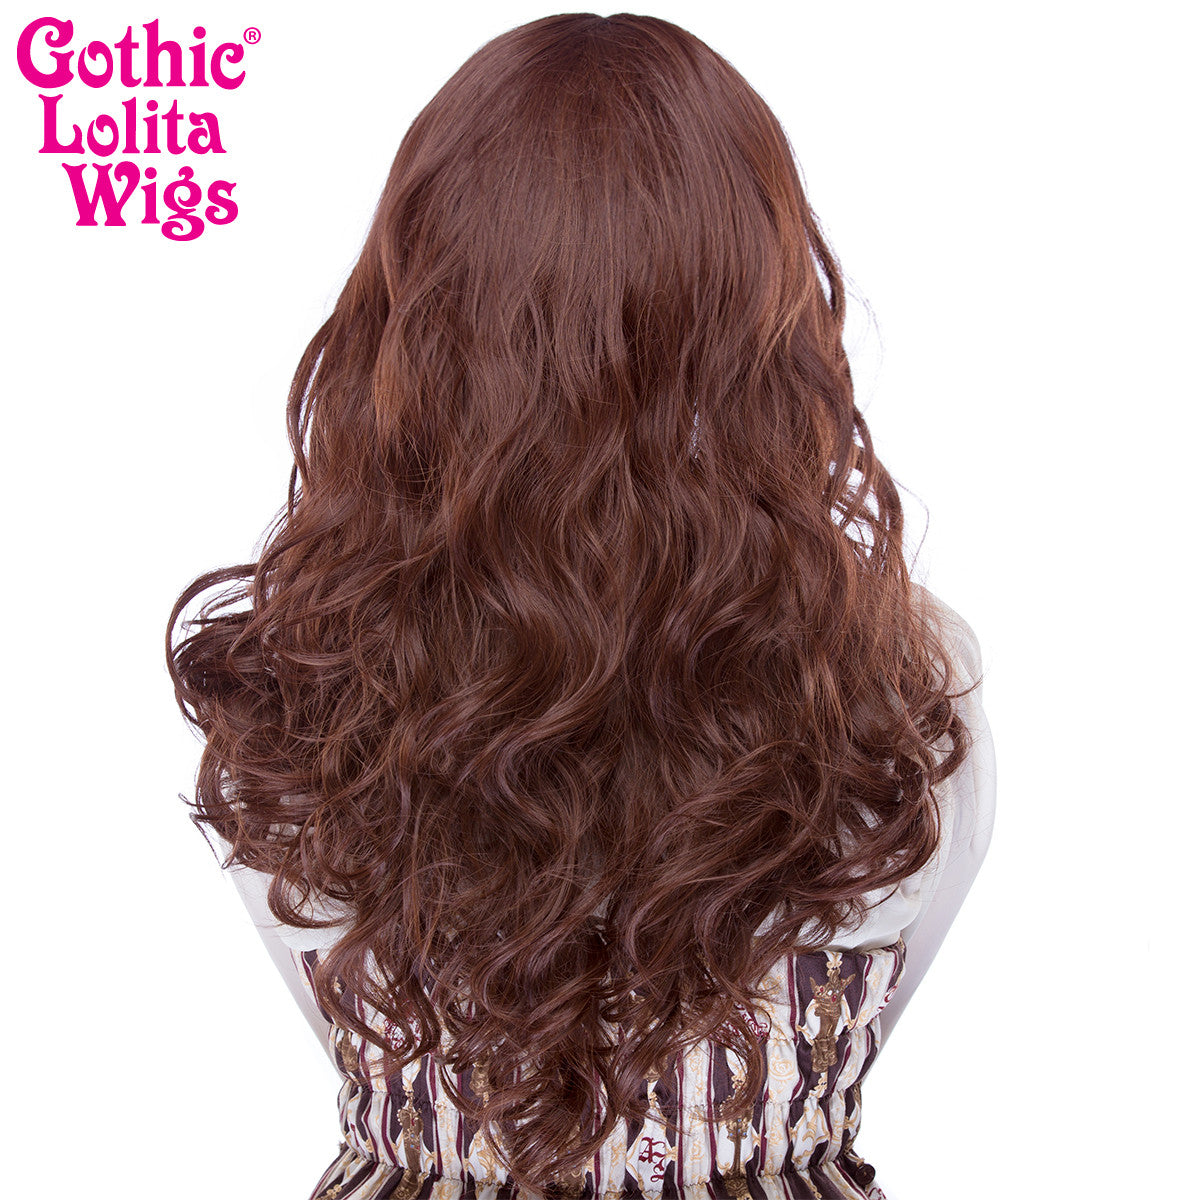 Gothic Lolita Wigs® <br> Heartbreaker Collection - Chocolate Brown Mix -00064